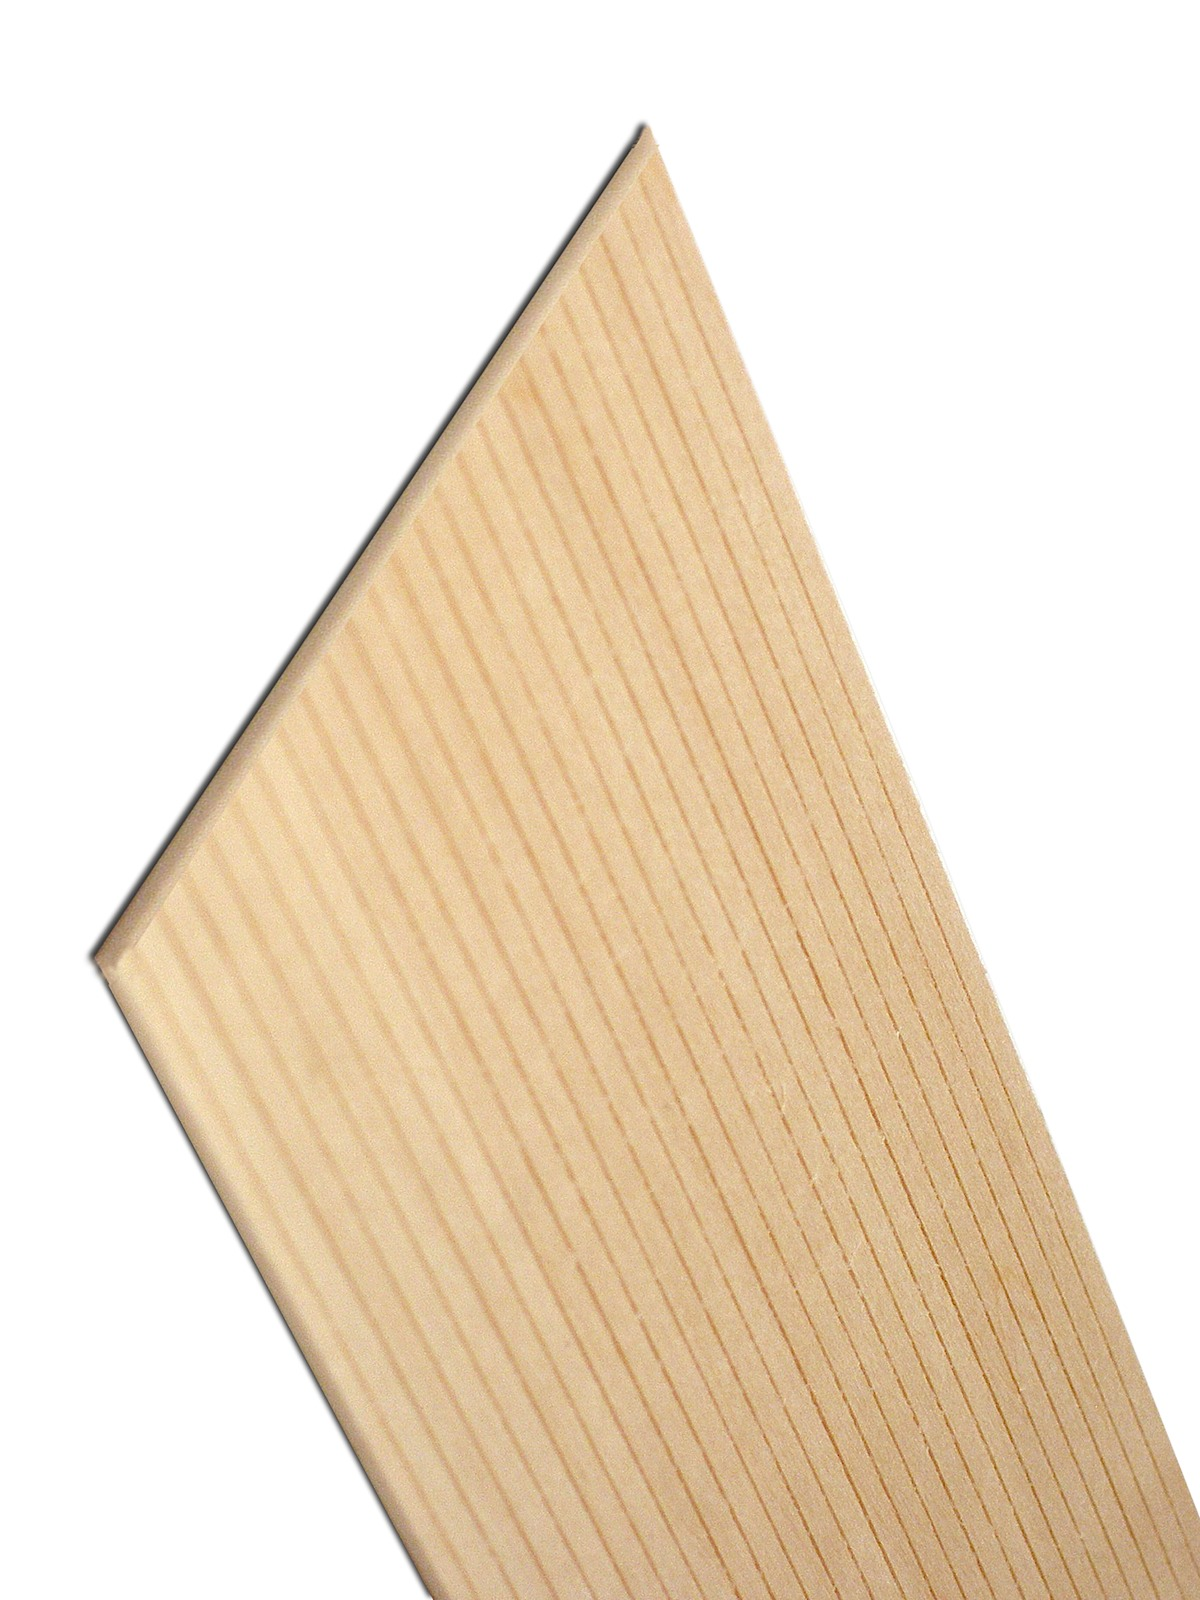 Midwest Basswood Scribed Sheathing Flooring Misterart Com